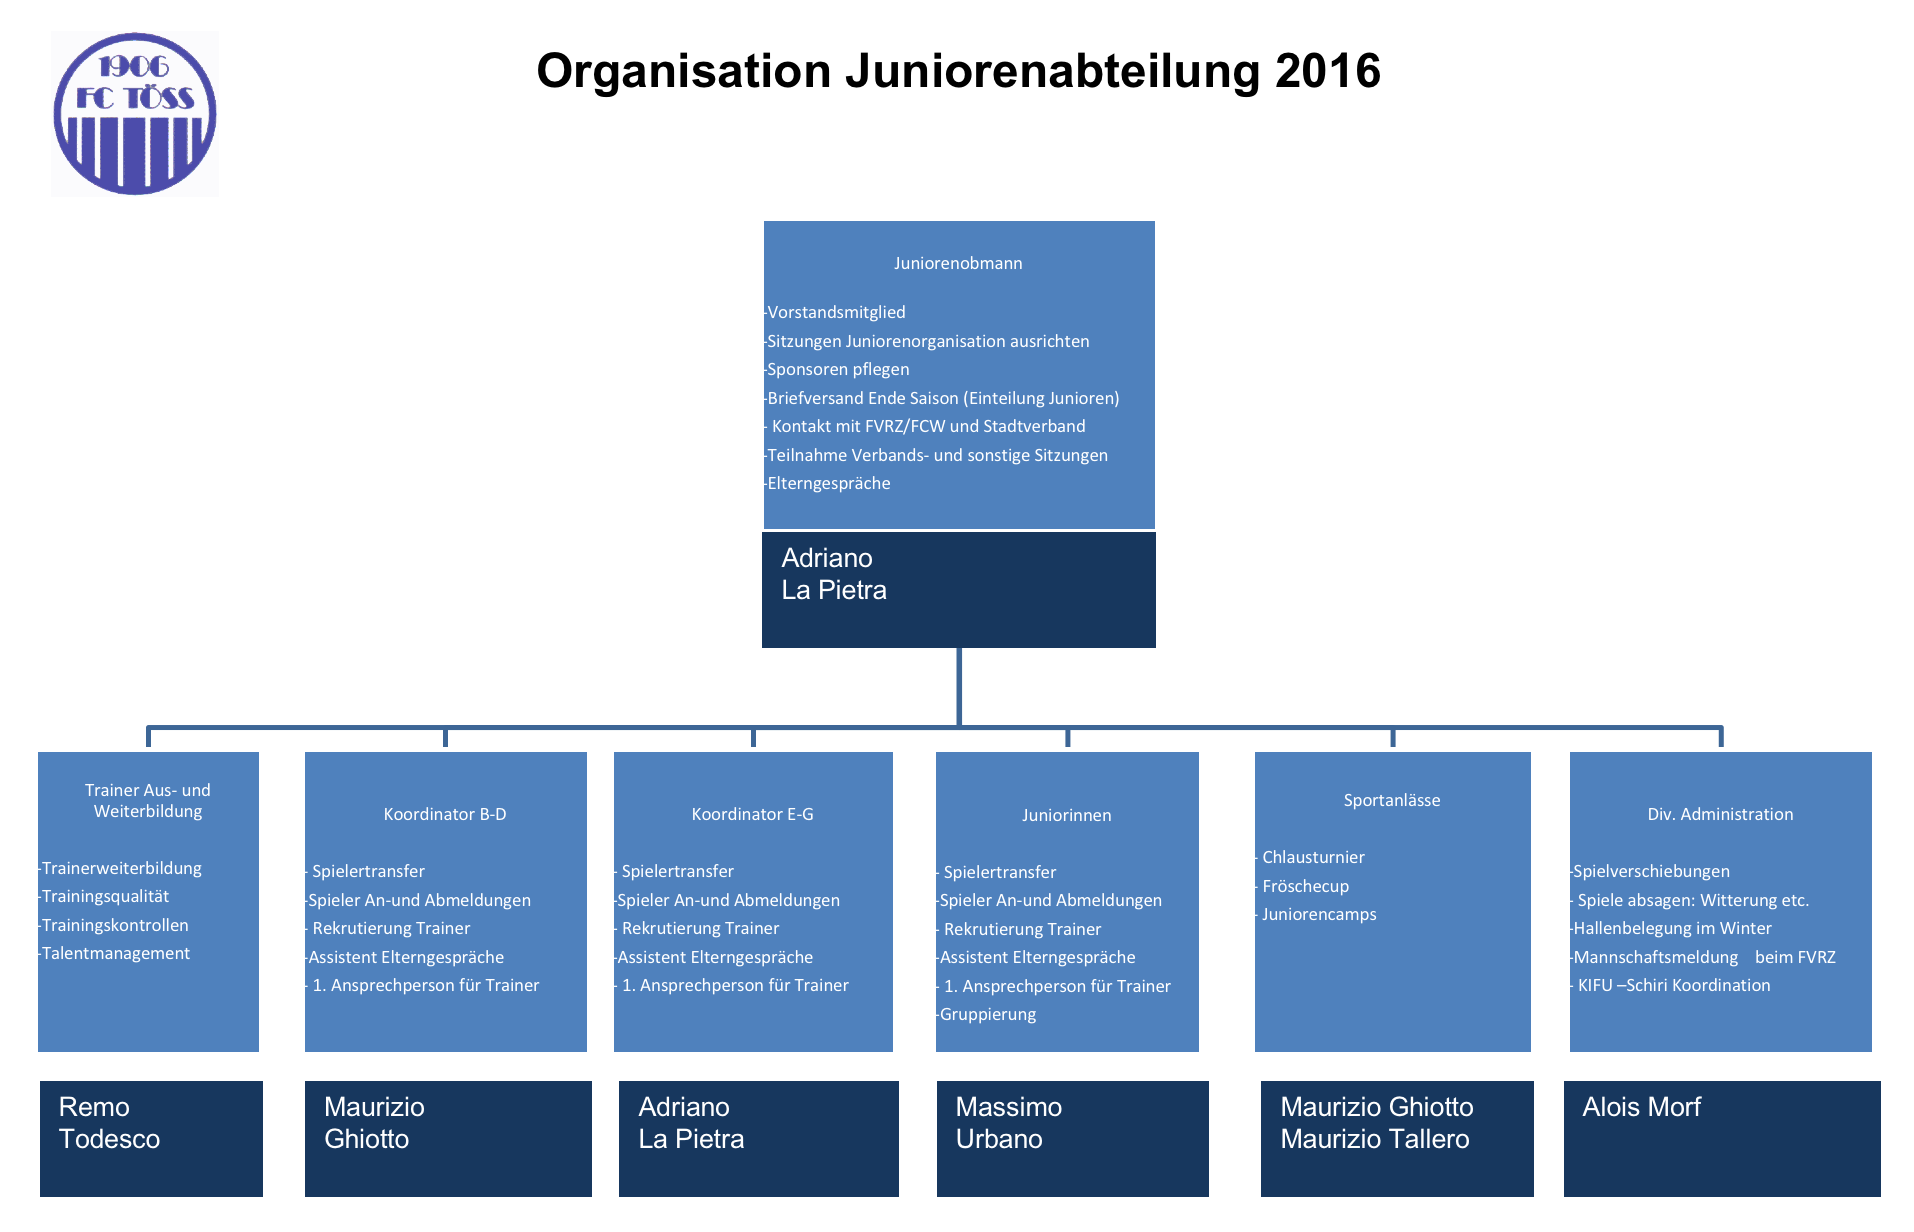 Organisation Junioren